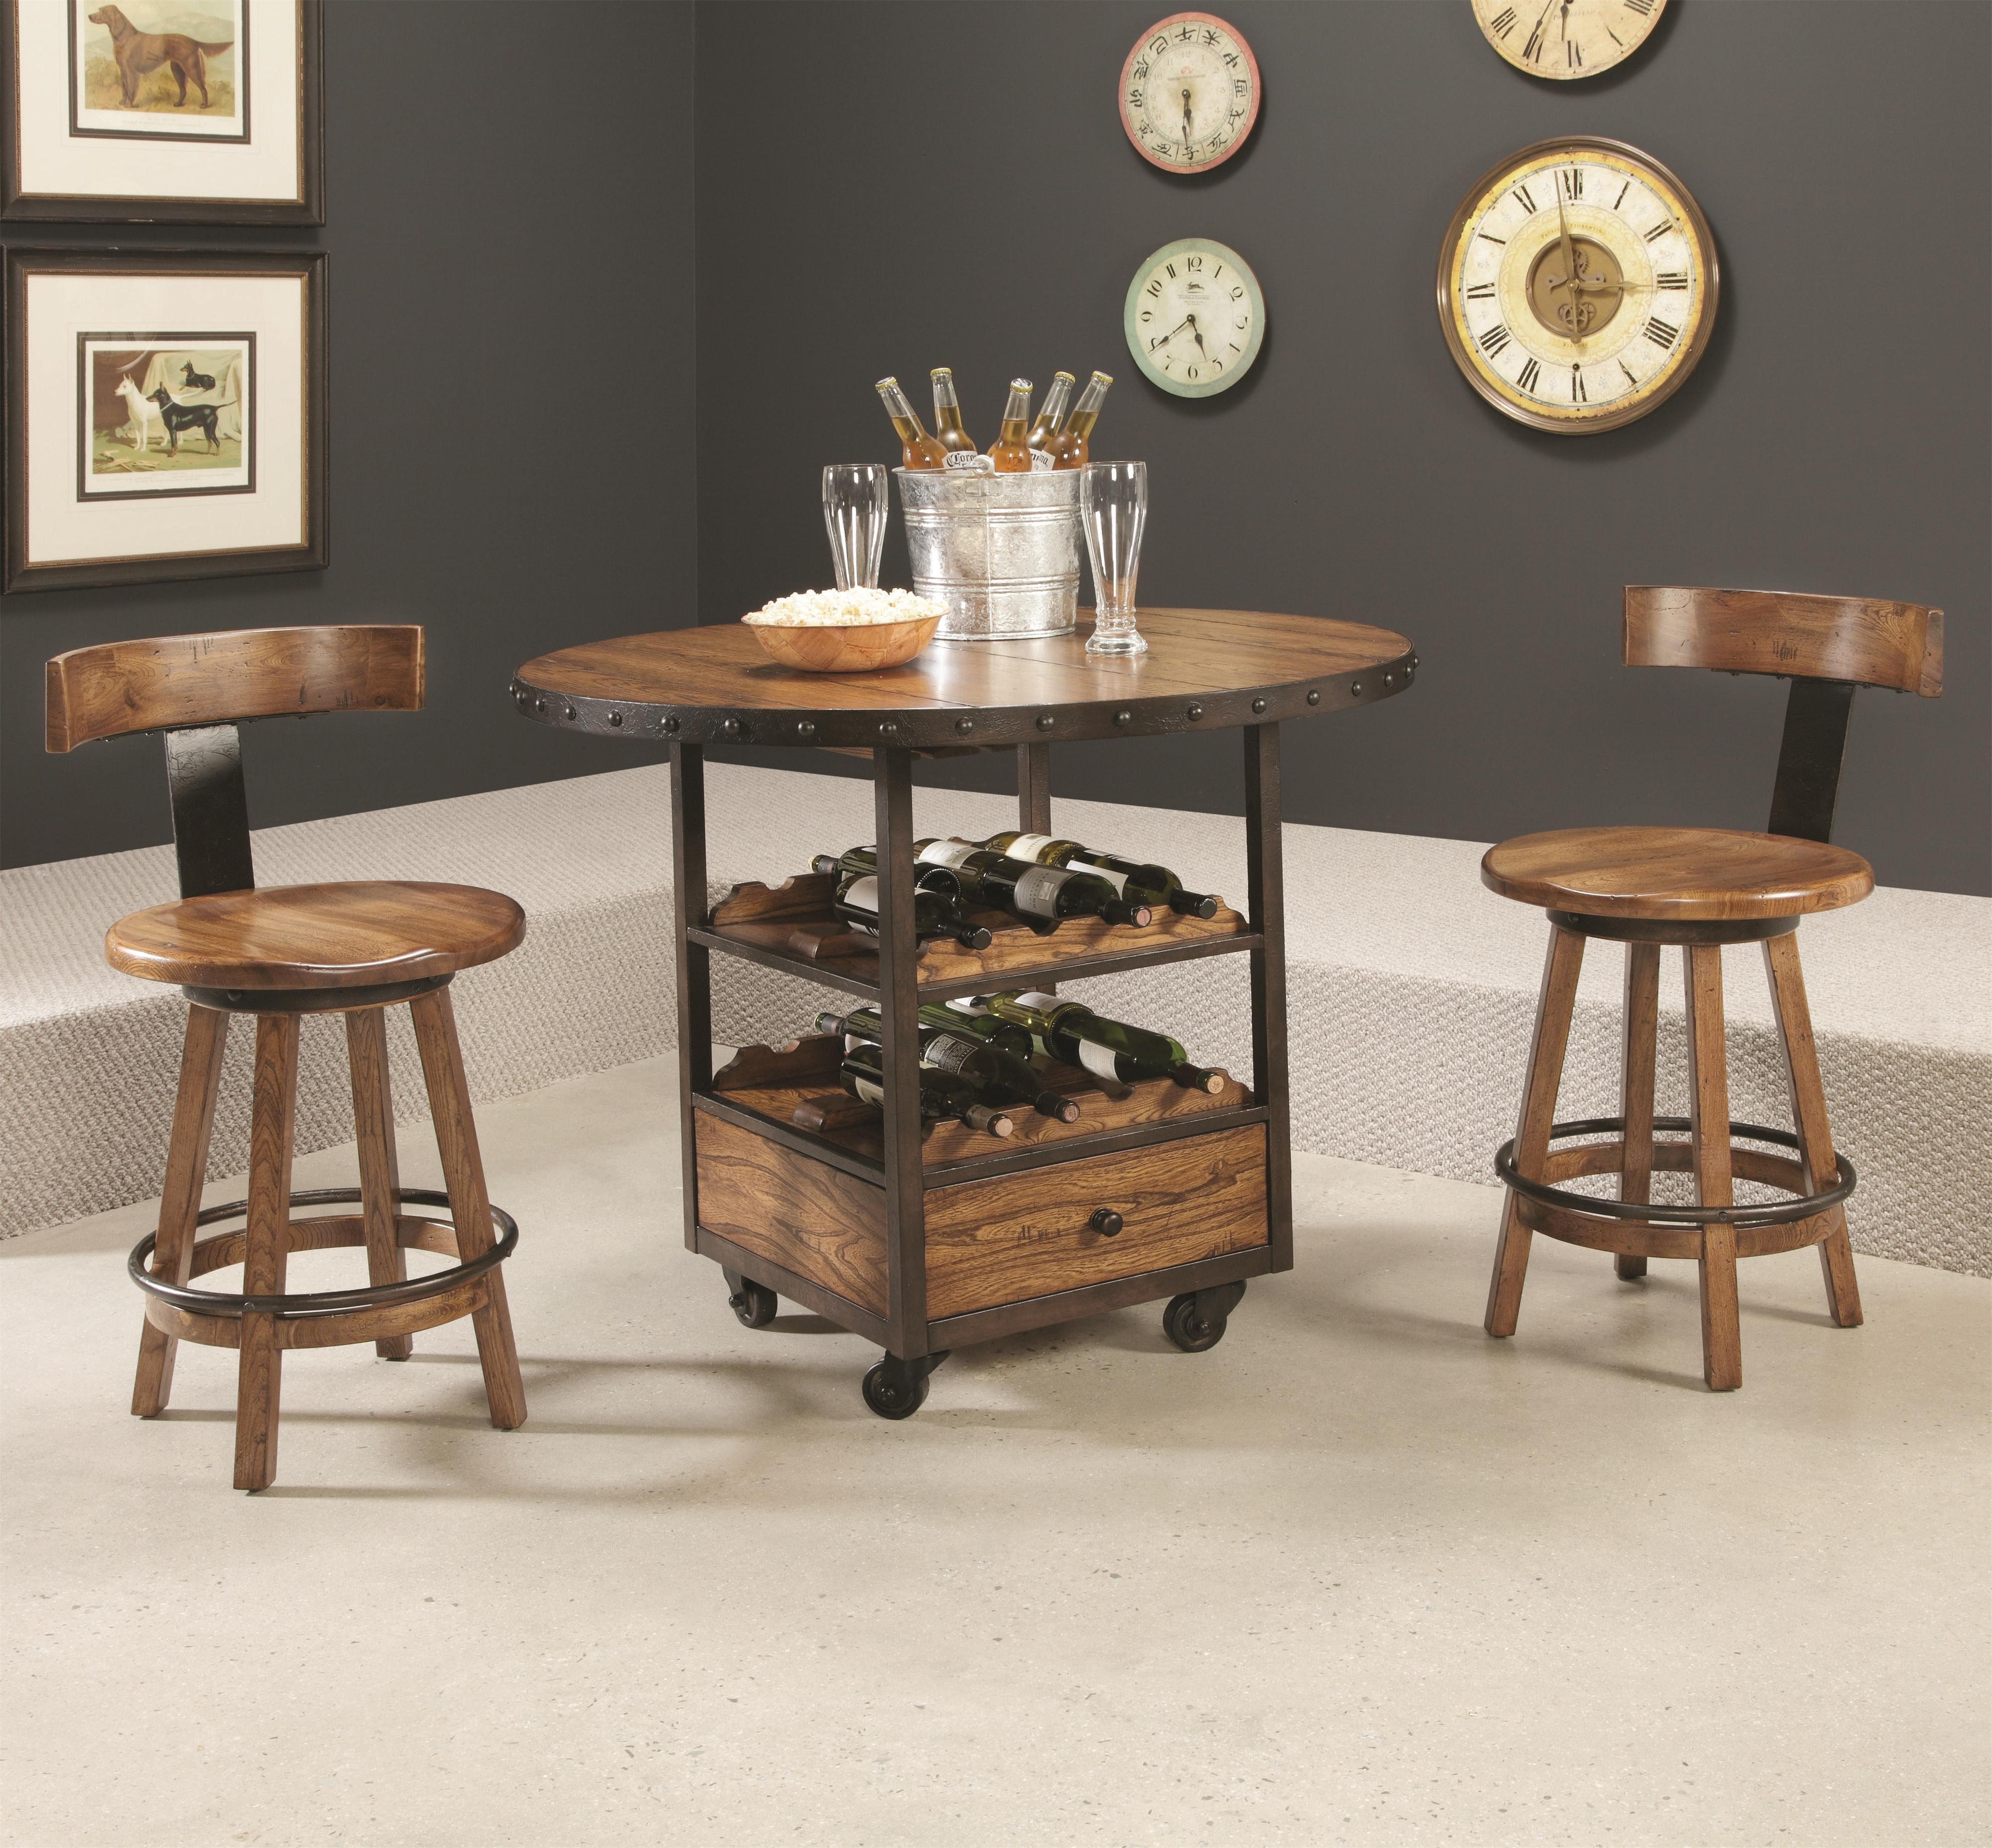 Hammary Americana Home 3 Piece Pub Table and Klismo Stool Set